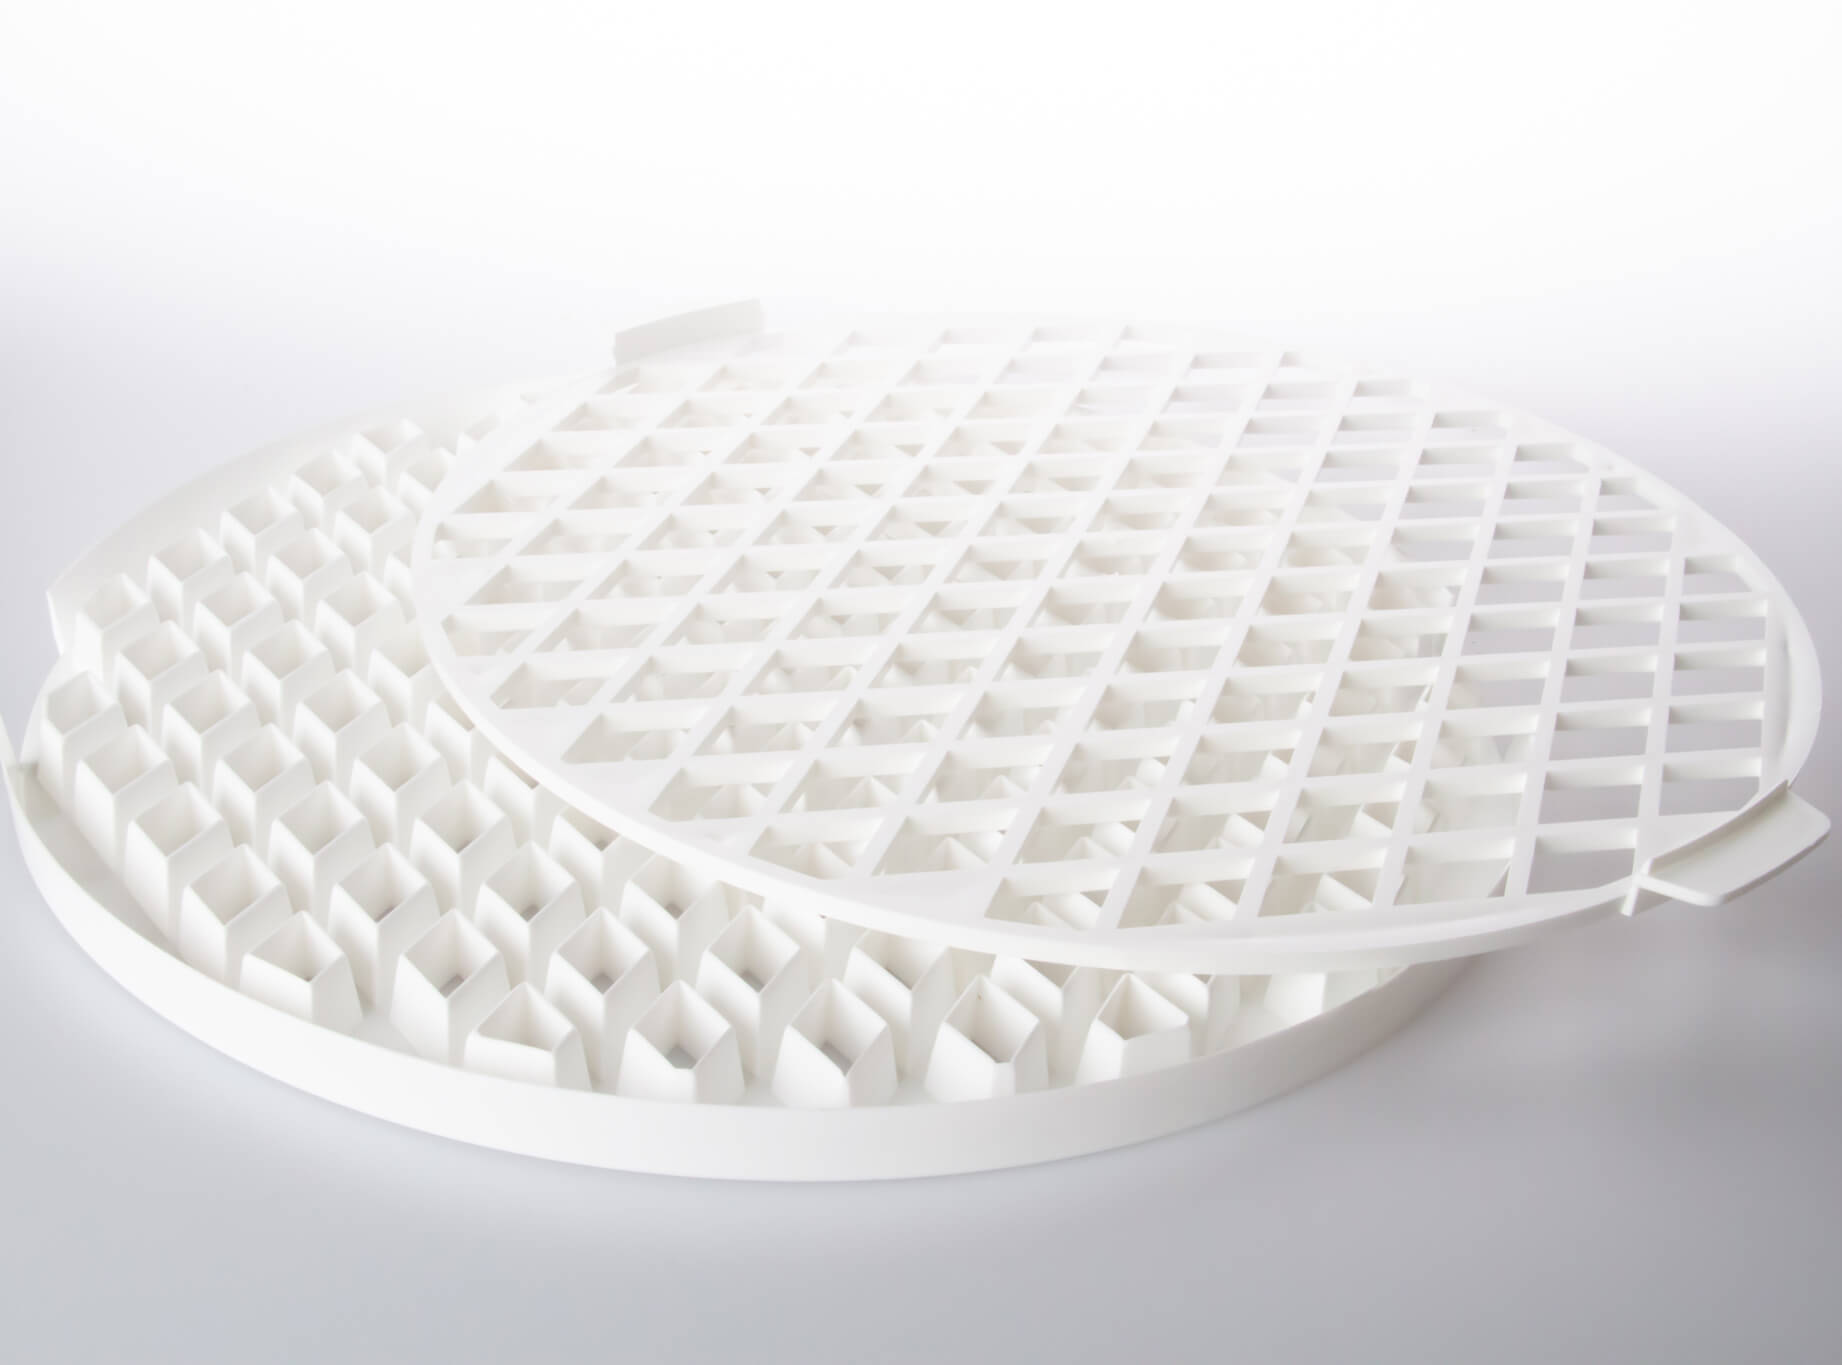 Creeds Pastry Lattice Cutters